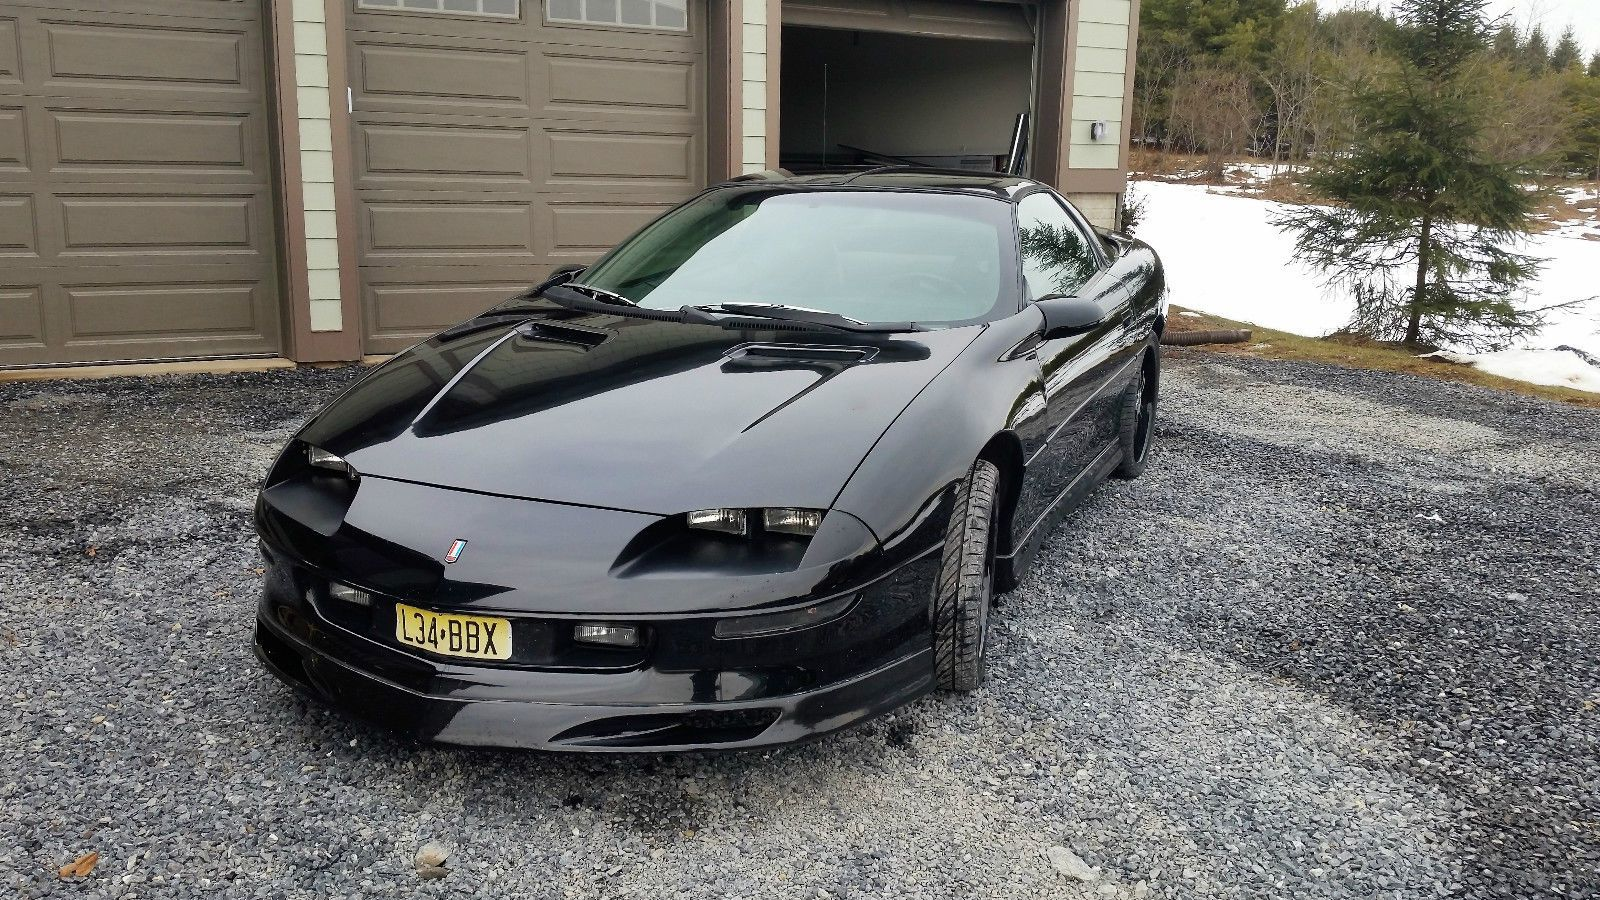 1995 Camaro Z28 T Tops 6 Speed Manual New Tires New Hd Clutch Brakes 36 Accel Injectors Headers Obx Stainless Exhaus Chevrolet Camaro Chevrolet Camaro